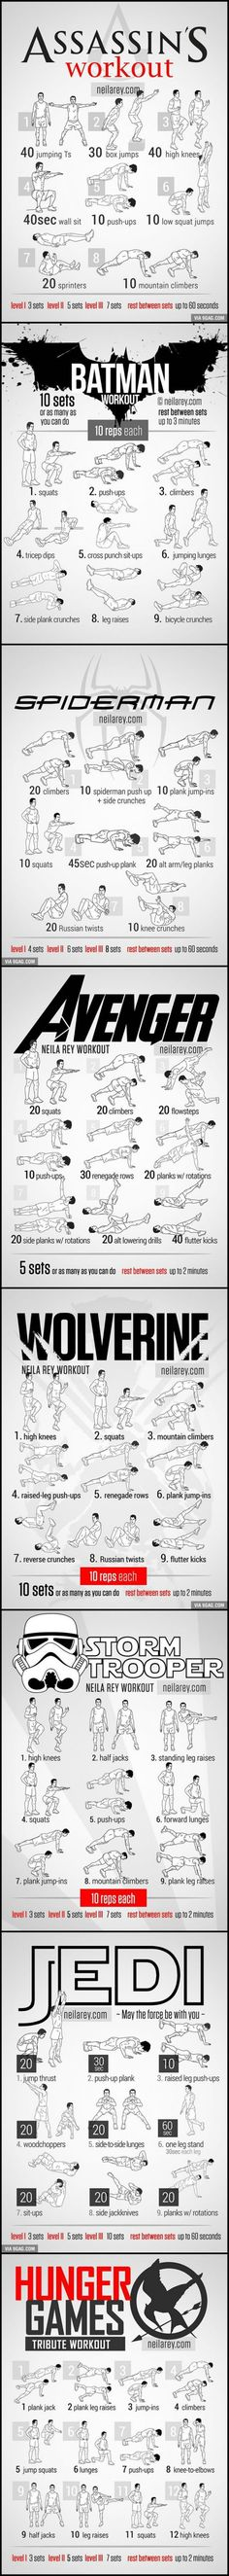 for Assassin, Batman, Spiderman, Avenger, Wolverine. Workout-for-Assassin-Batman-Spiderman-Avenger-WolvWorkout-for-Assassin-Batman-Spiderman-Avenger-Wolv Zumba Fitness, Fitness Workouts, Body Fitness, At Home Workouts, Fitness Tips, Fitness Motivation, Health Fitness, Fitness Goals, Hero Workouts